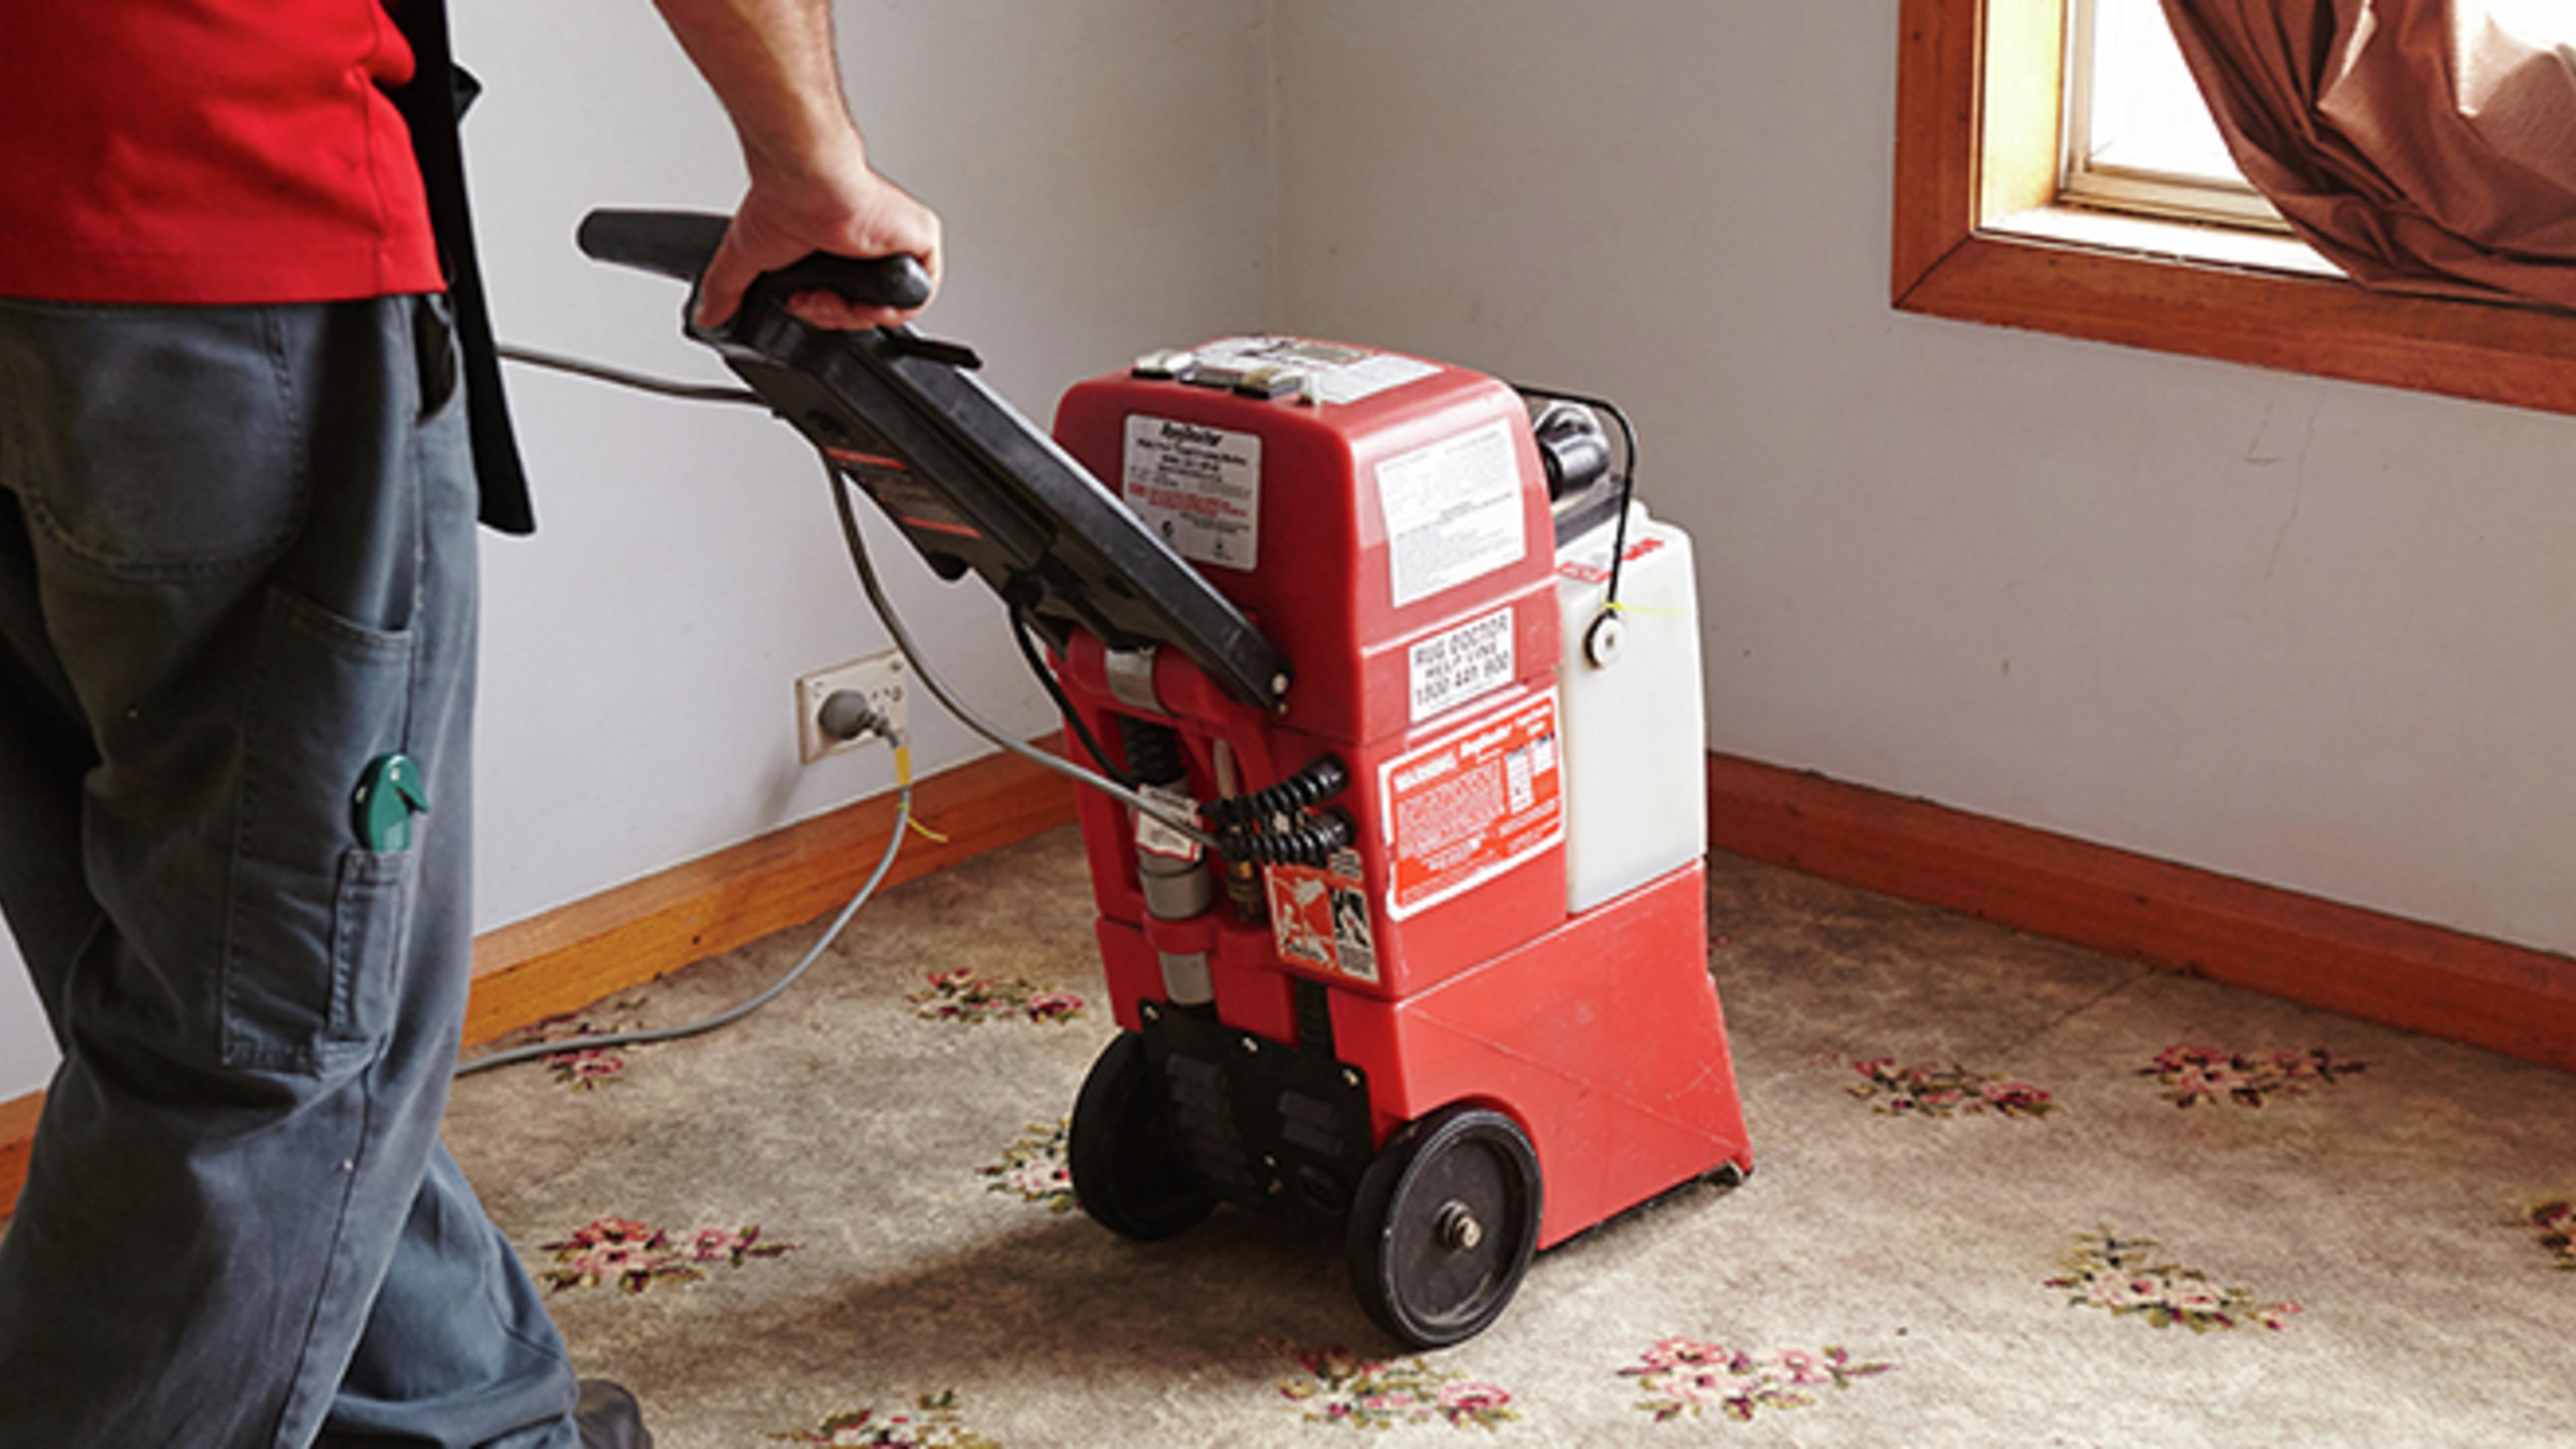 Person using a carpet cleaner on a carpeted floor